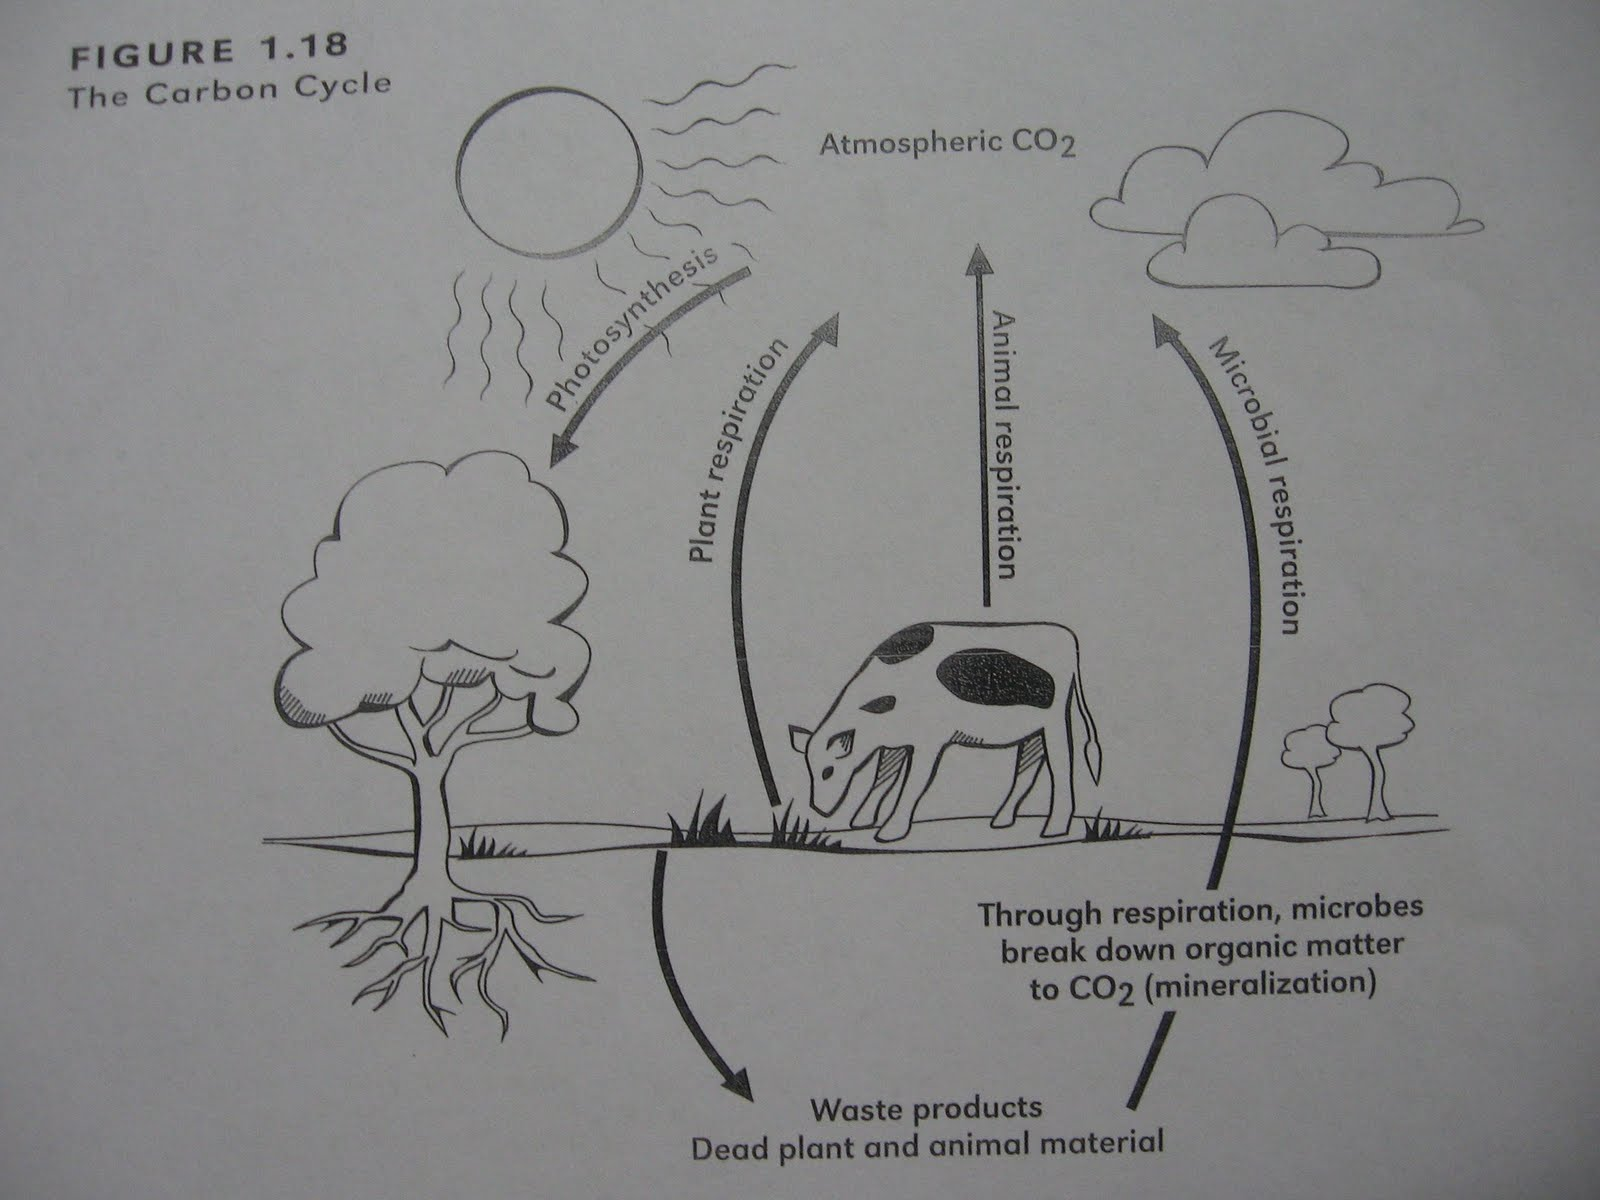 small resolution of for homework some people need to redo some of their answers we read about the nitrogen cycle and looked at a diagram that shows how nitrogen fixing